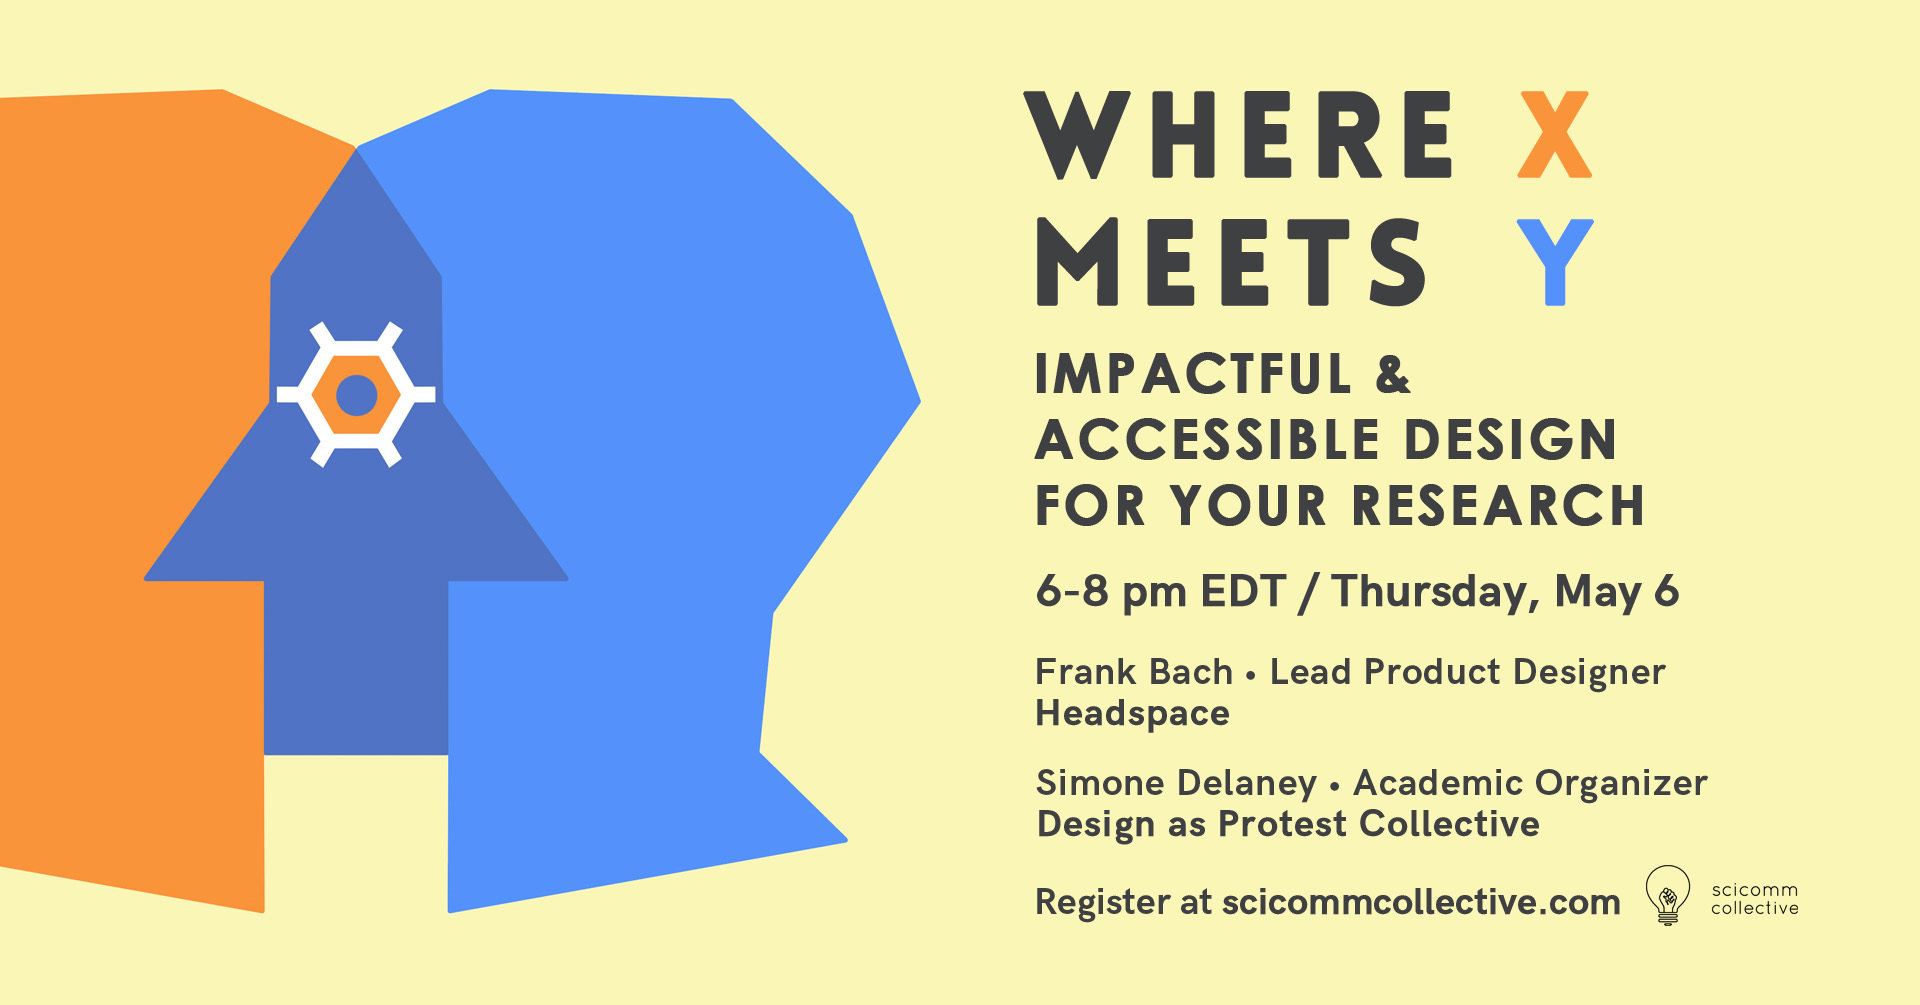 Where X Meets Y: Impactful & Accessible Design For Your Research